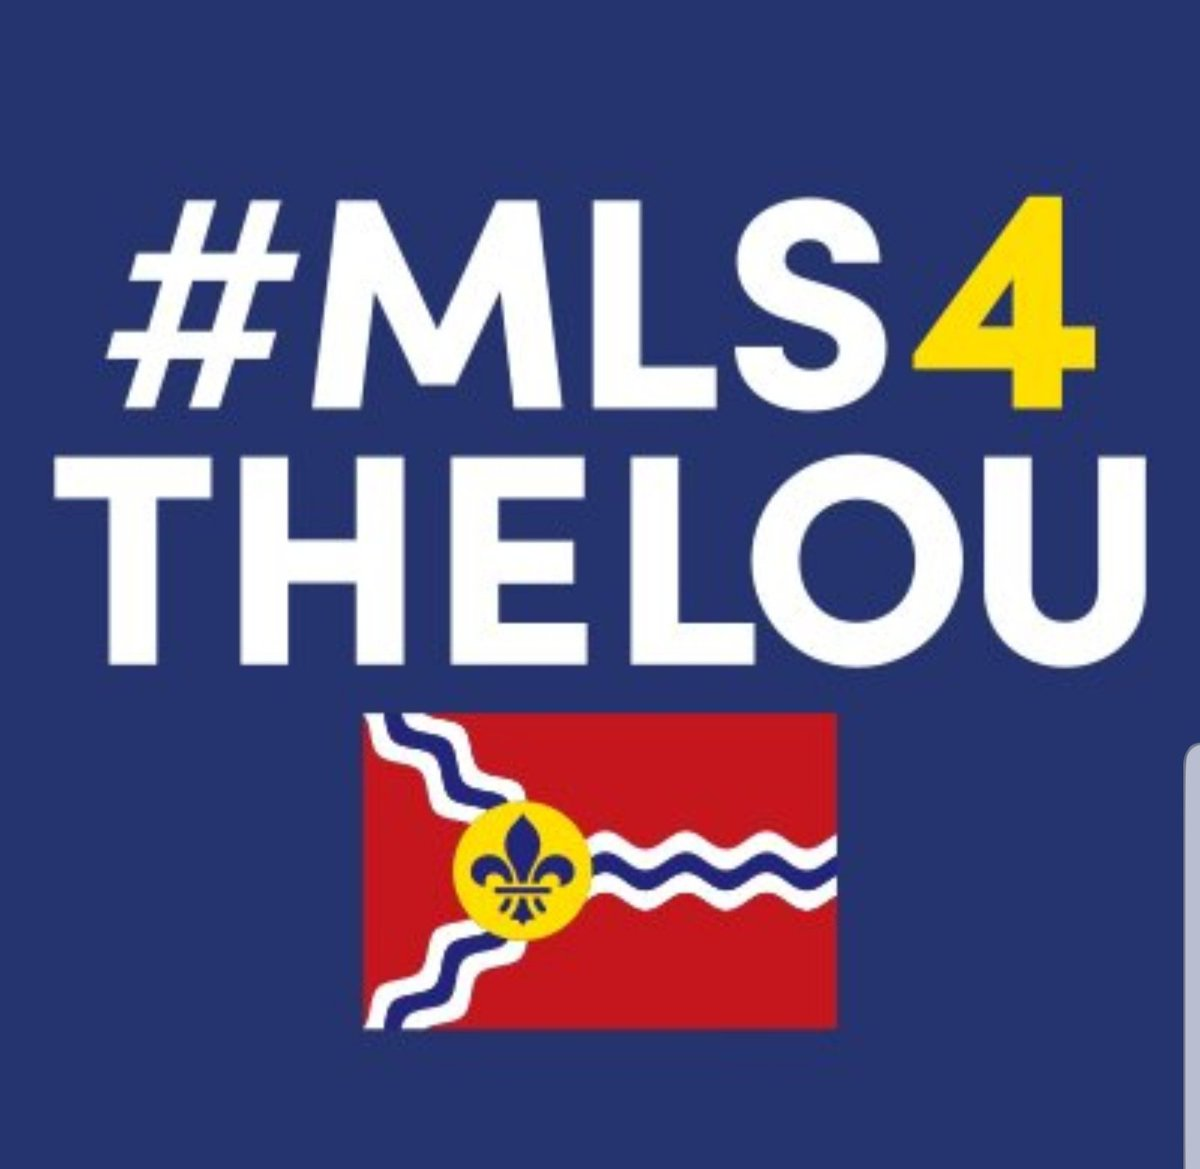 TODAY IS THE DAY! @MLS in STL today to announce @MLS4theLou Congrats to all who put in the hard work to make it happen! Lets DO this!!!